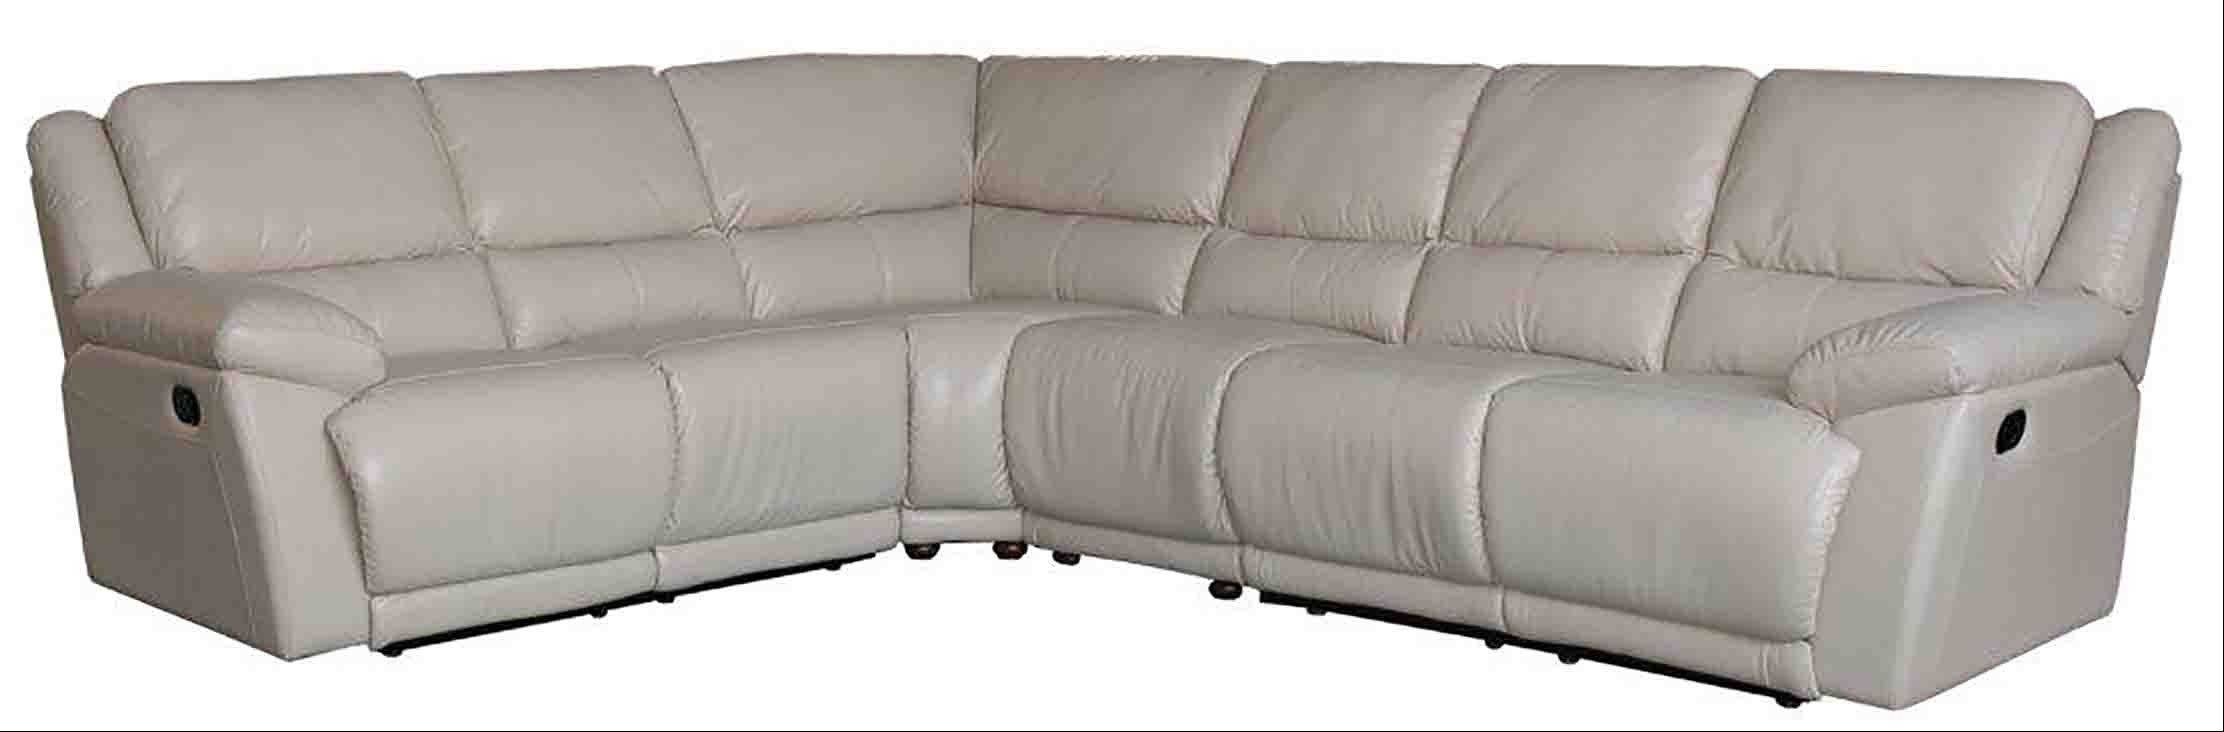 A best-seller at O'Reilly's Furniture in Libertyville is the motion sectional, which includes two power recliners.